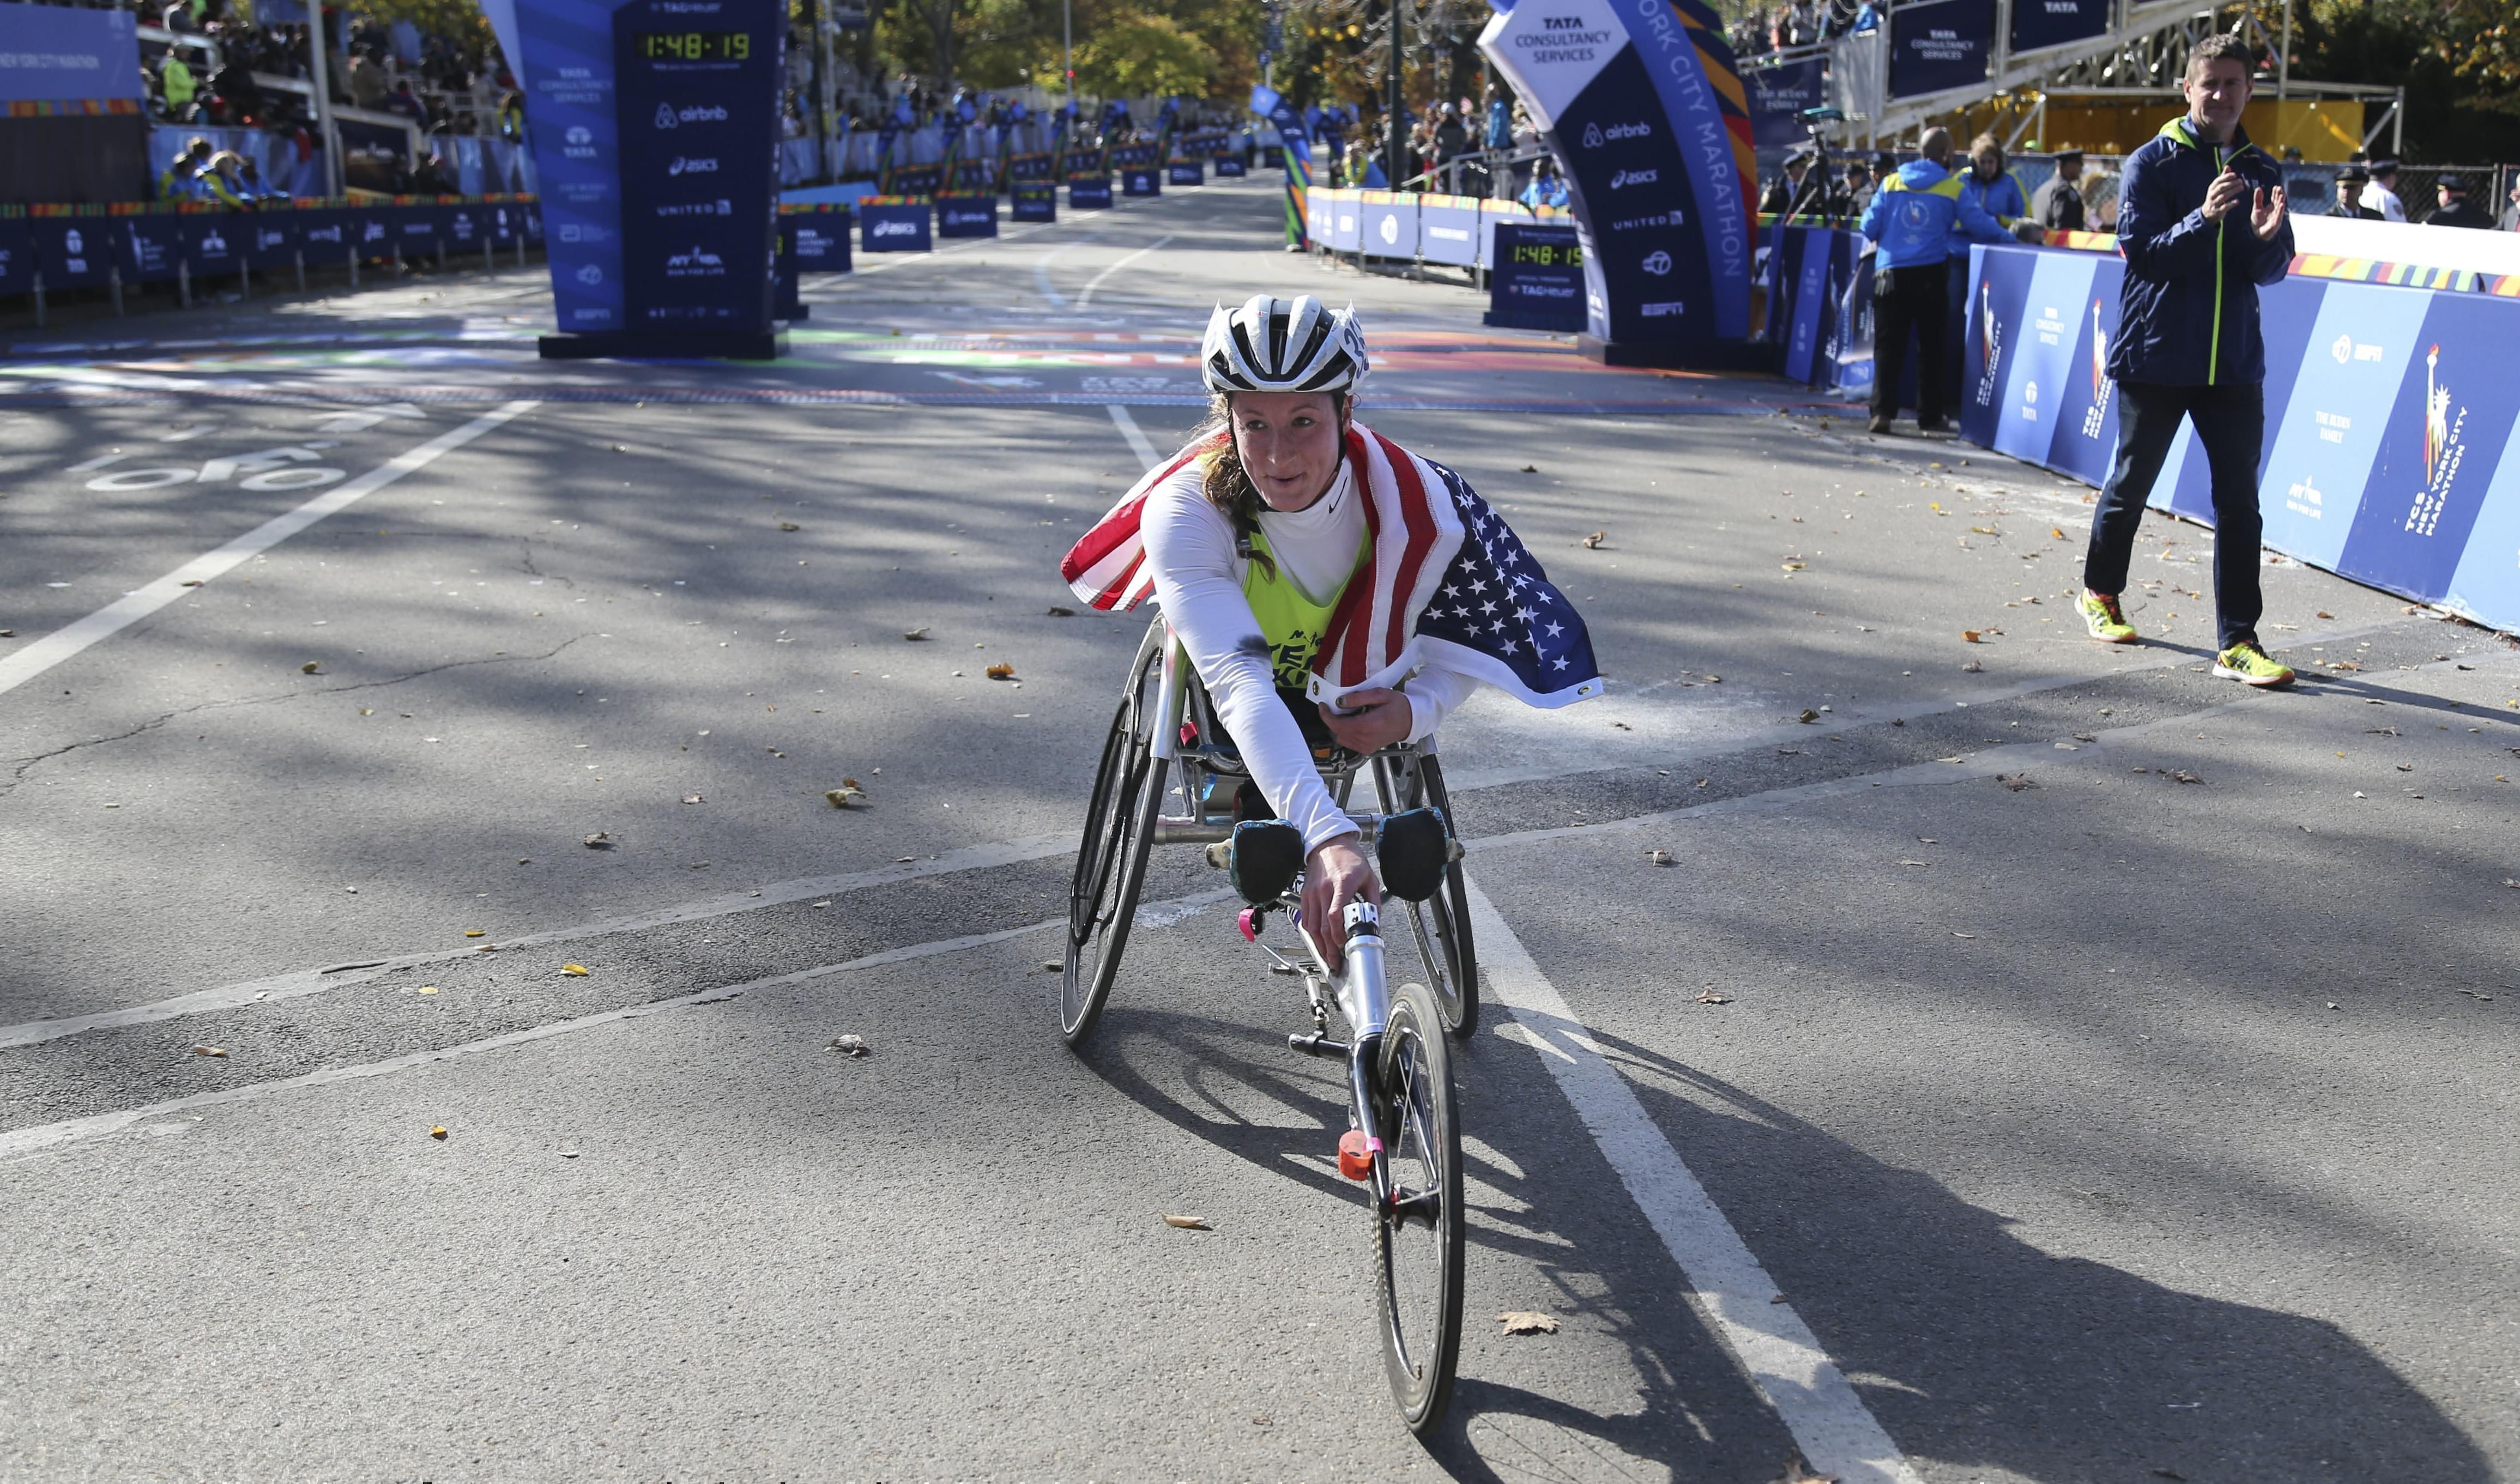 U of I graduate  tatyana McFadden poses for pictures after winning the women's wheelchair division at the 2016 New York City Marathon.